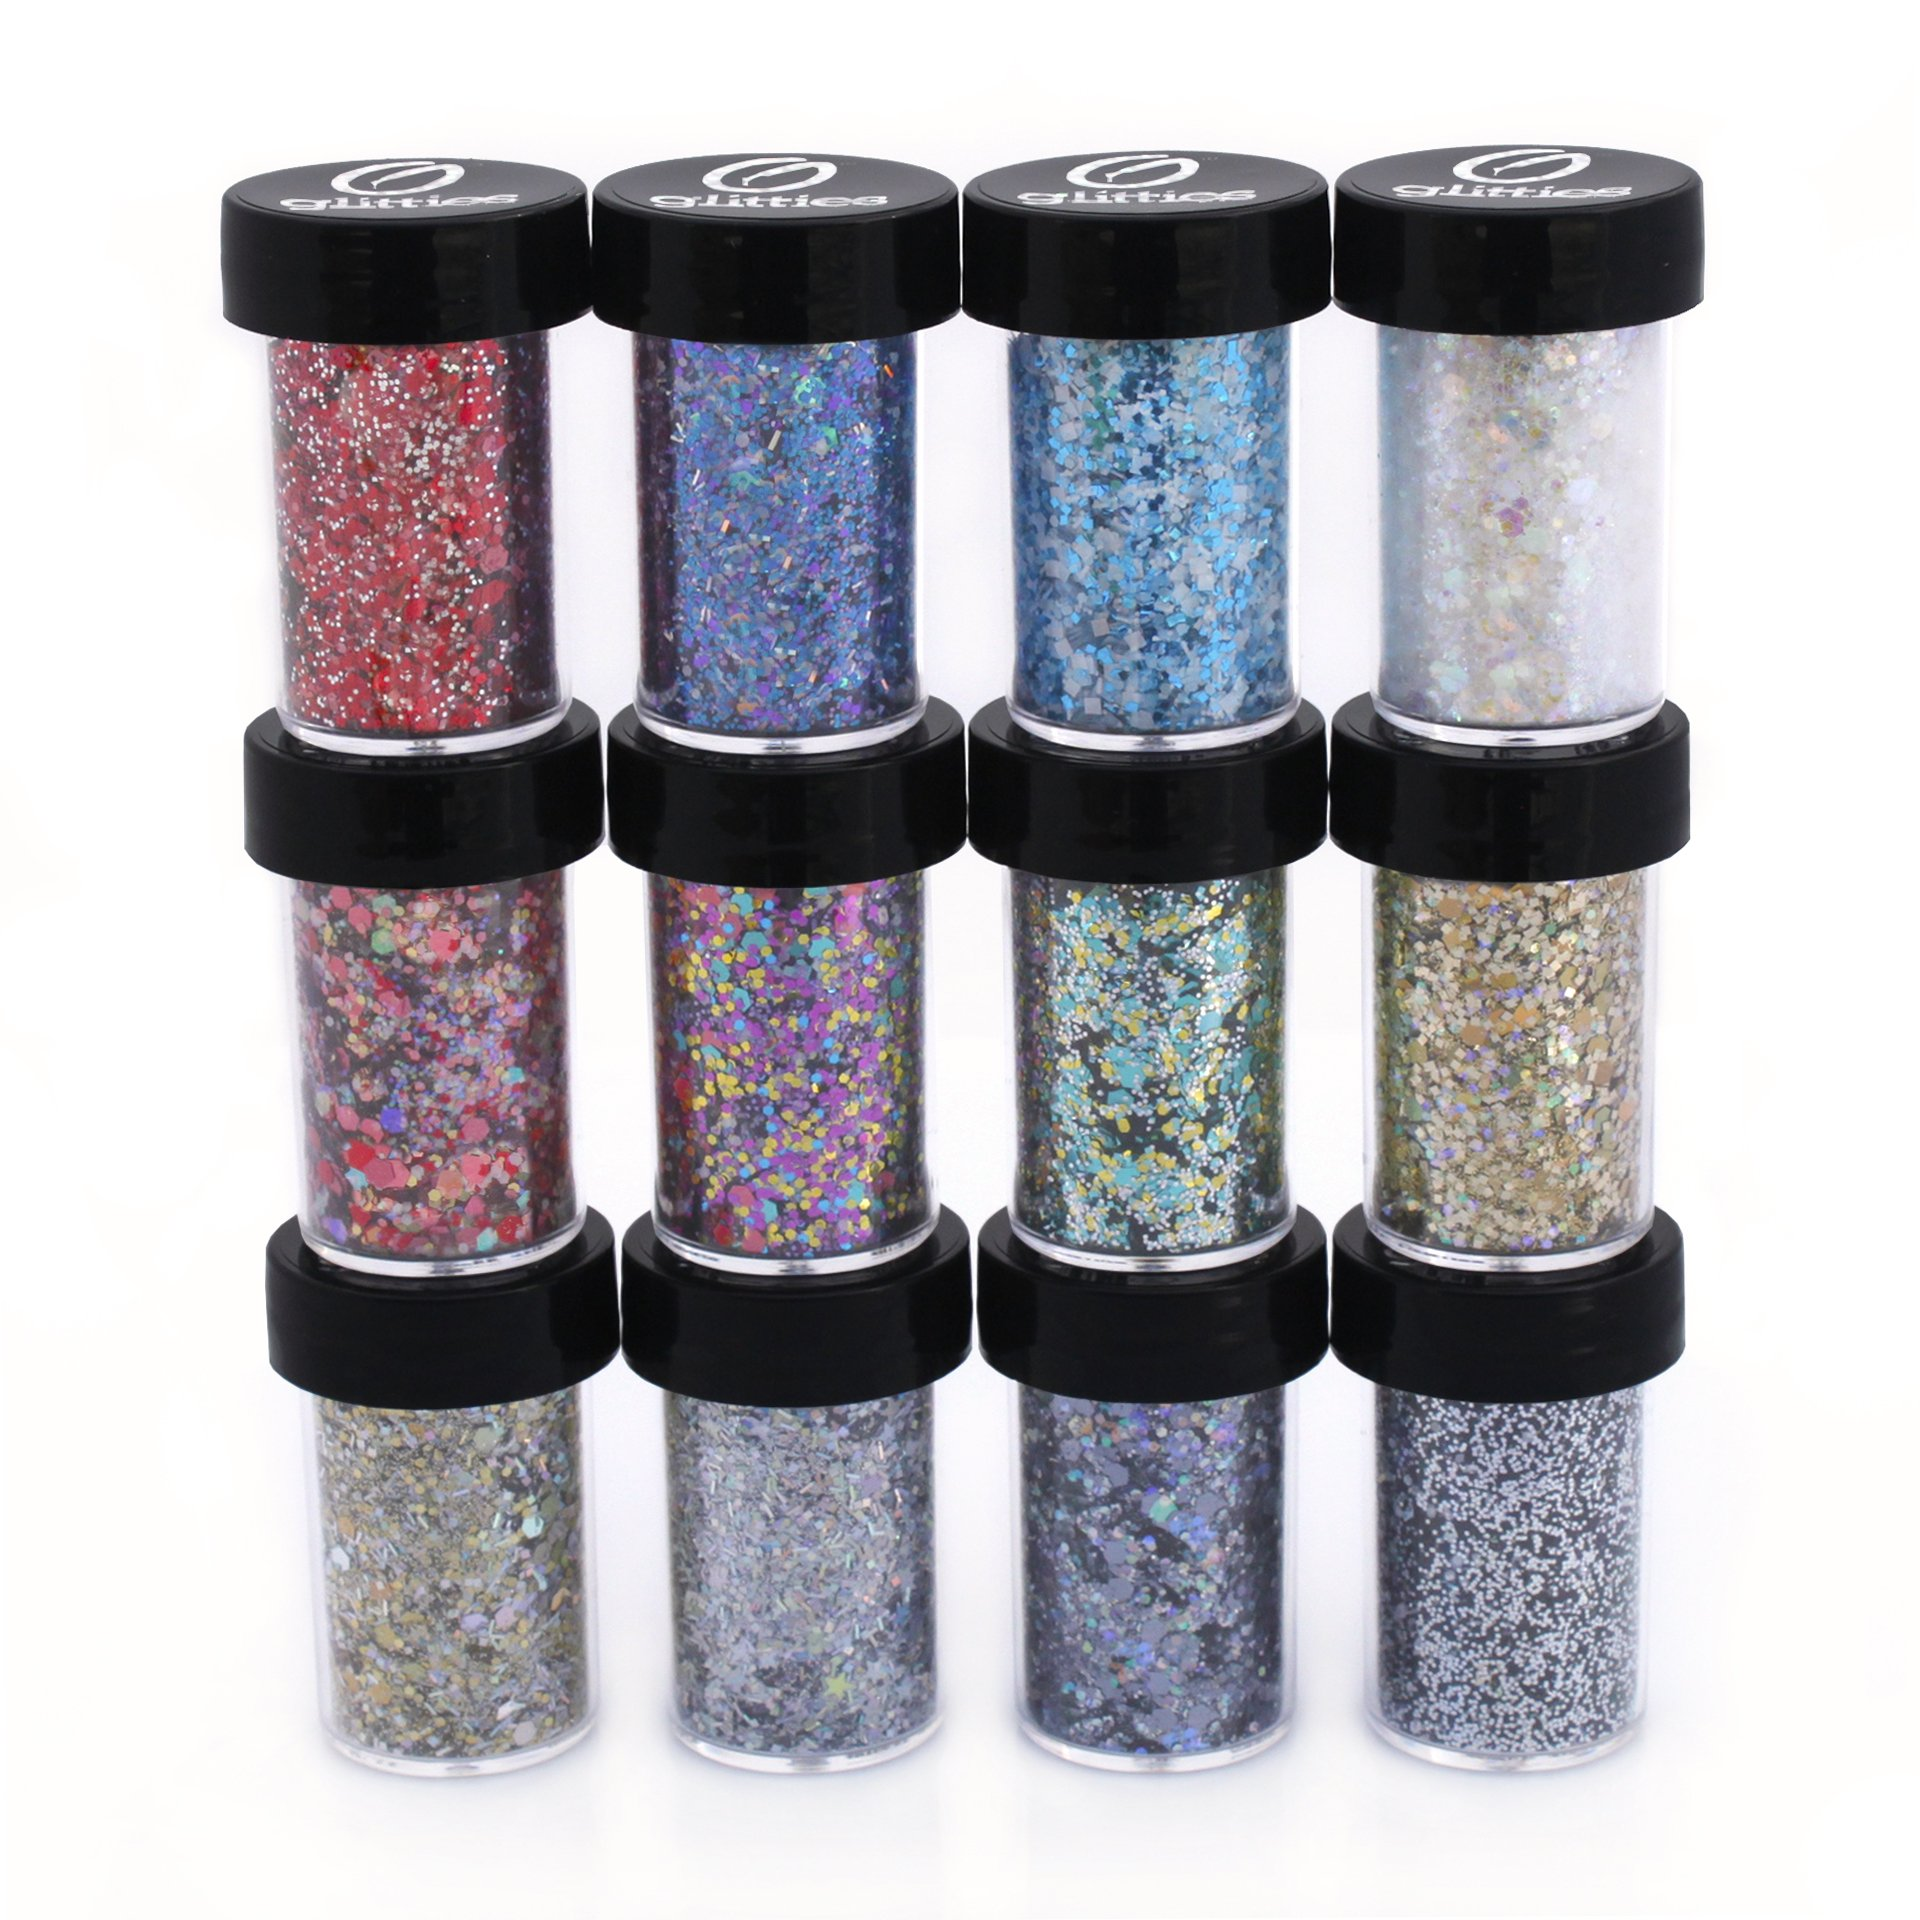 Polyester Mixed Glitter 12 Piece Kit - Includes Solvent Resistant Dust, Powder, Hexagon, Holographic, Glitters - Great for Nail Art Polish, Gels, Acrylics Supplies, Art and Crafts, - (7/8 Oz Jars)